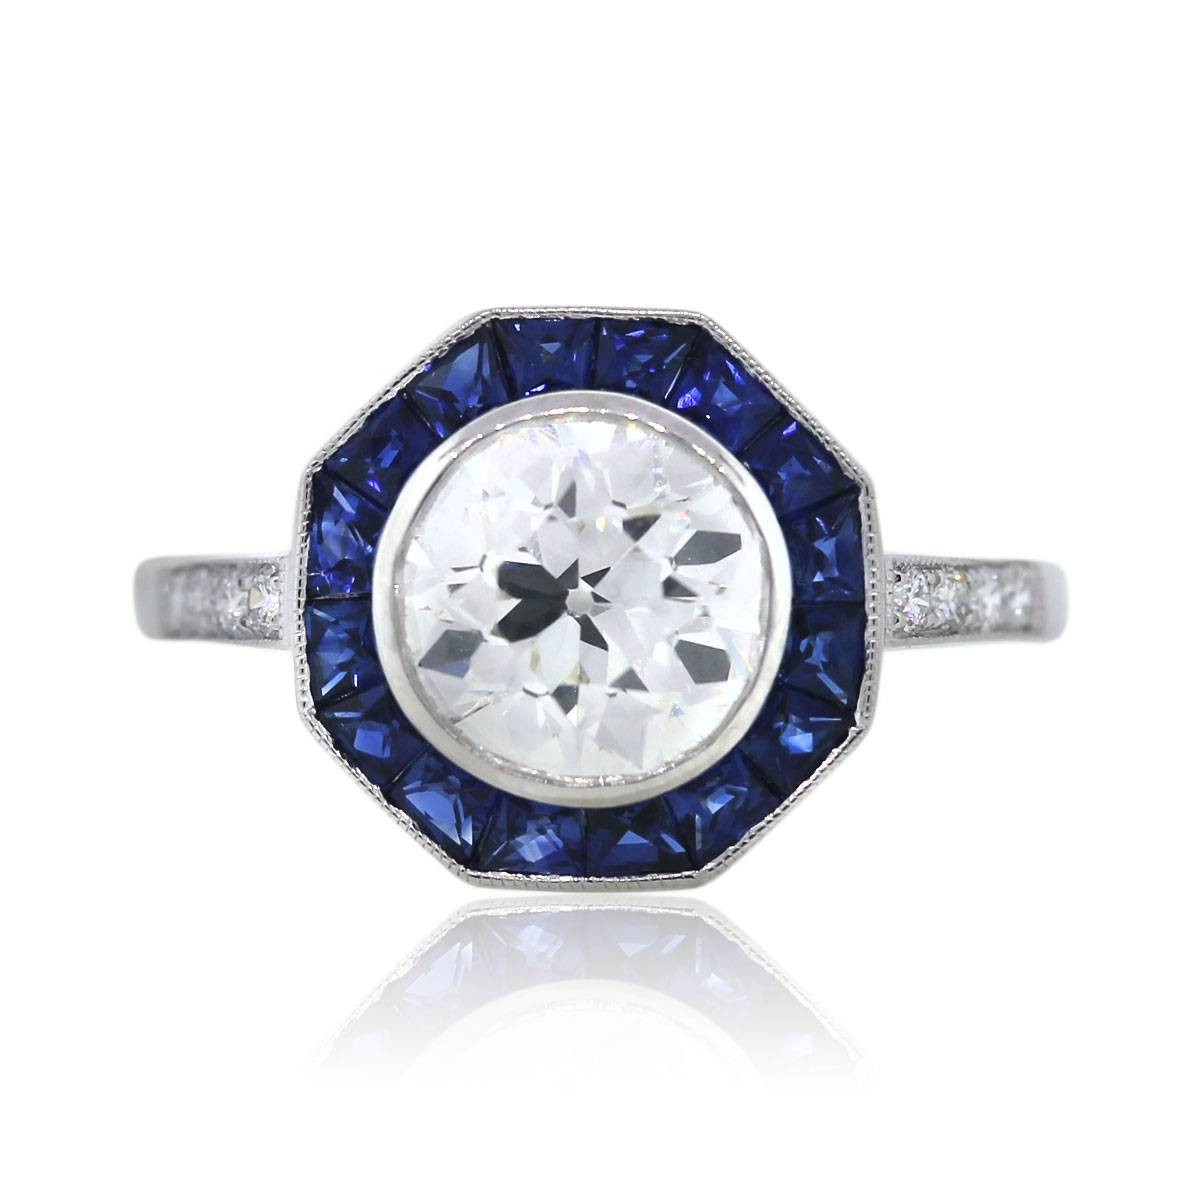 Platinum Octagonal Art Deco Diamond And Sapphire Engagement Ring Intended For Diamond And Sapphire Wedding Rings (Gallery 13 of 15)